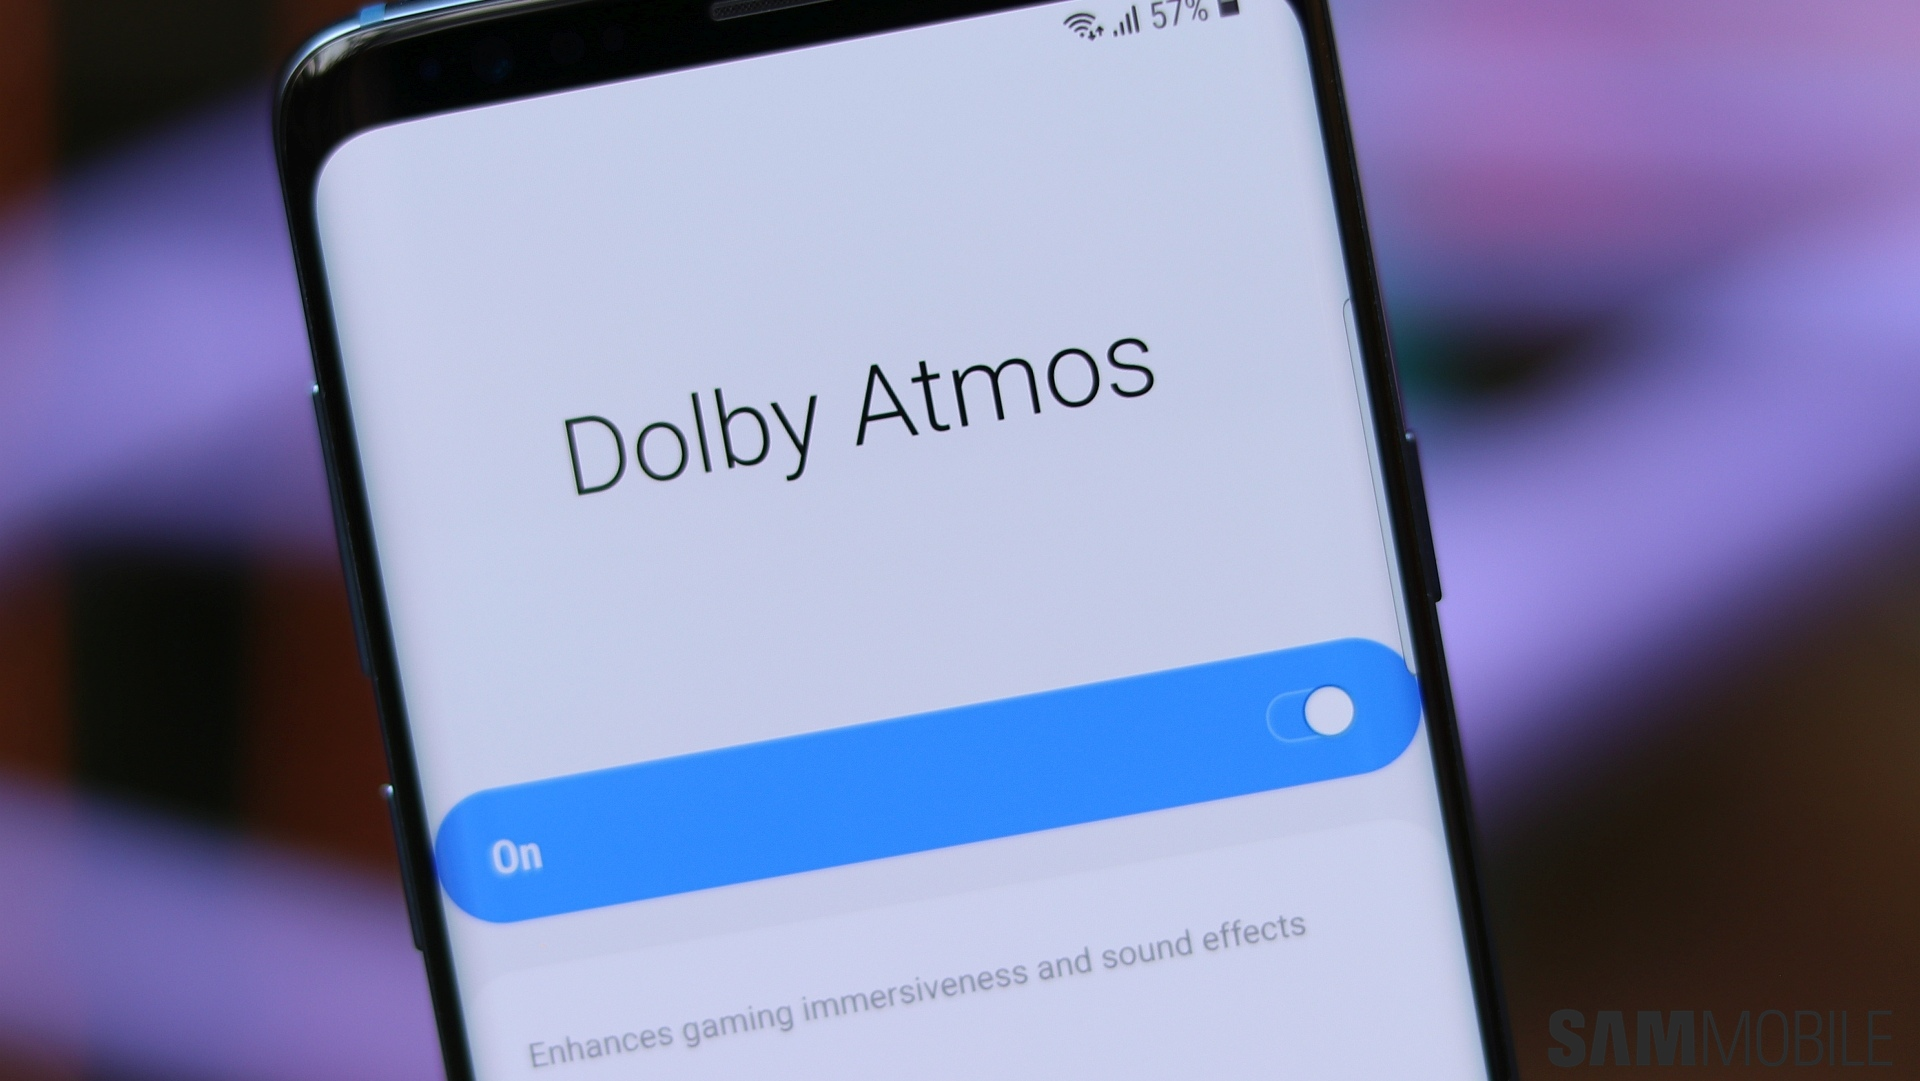 PSA: Galaxy S8 and Note 8 get Dolby Atmos support with Android Pie